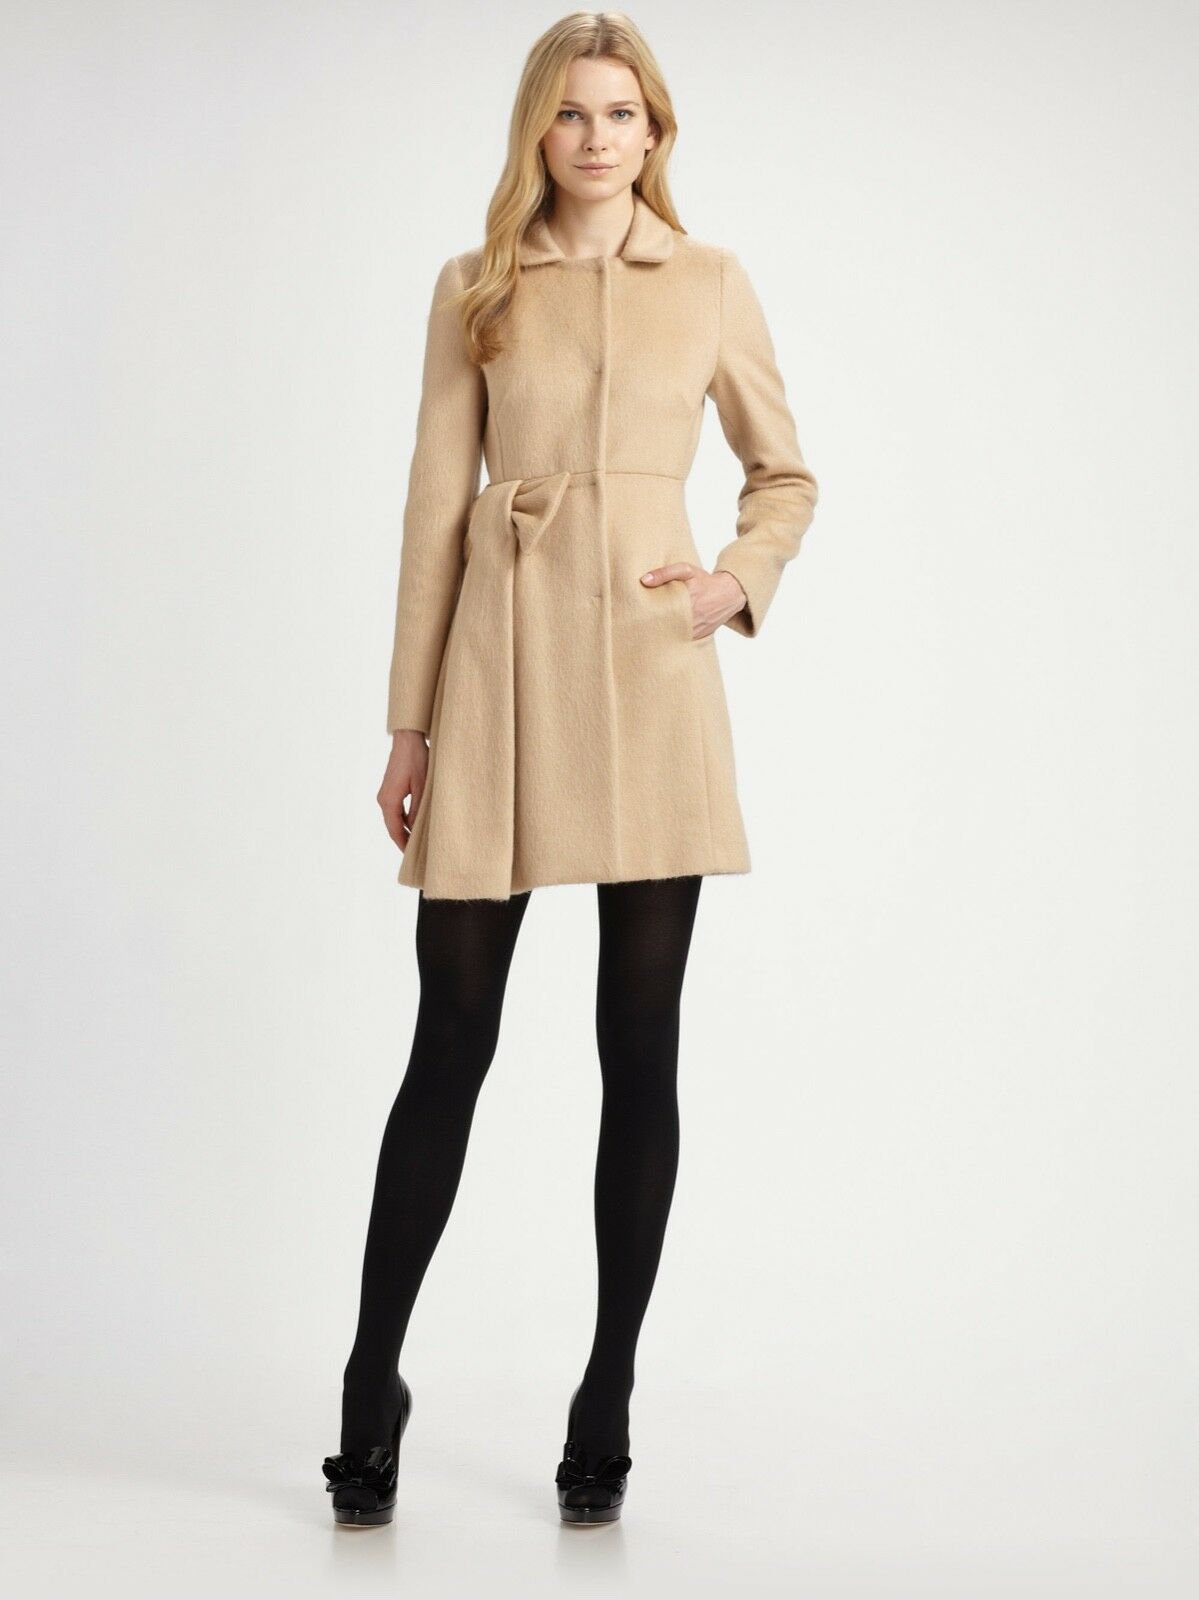 RED Valentino Natural Mohair Bow Coat, Size US6, IT 42